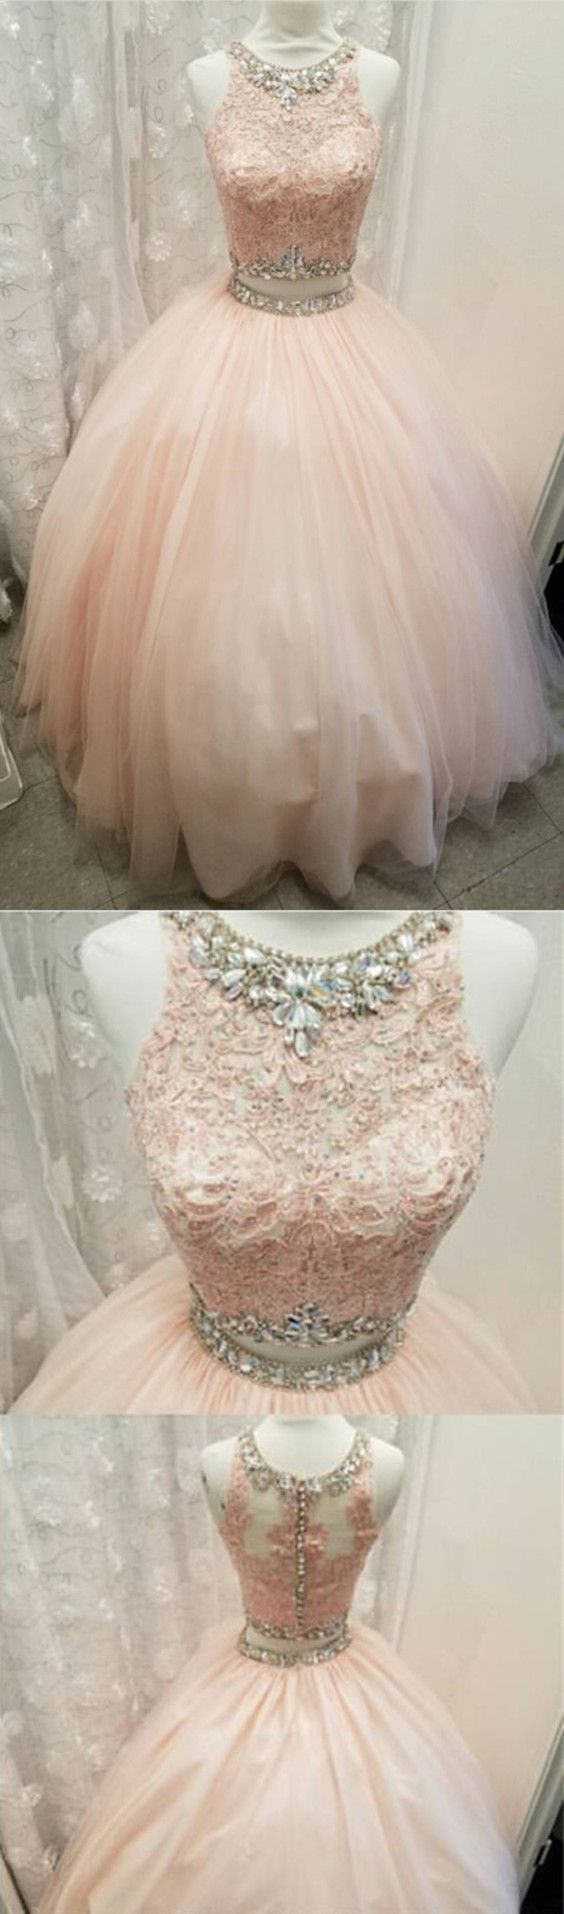 Quinceanera Dresses,Ball Gowns Prom Dresses,Sweet Dresses,Elegant Quinceanera